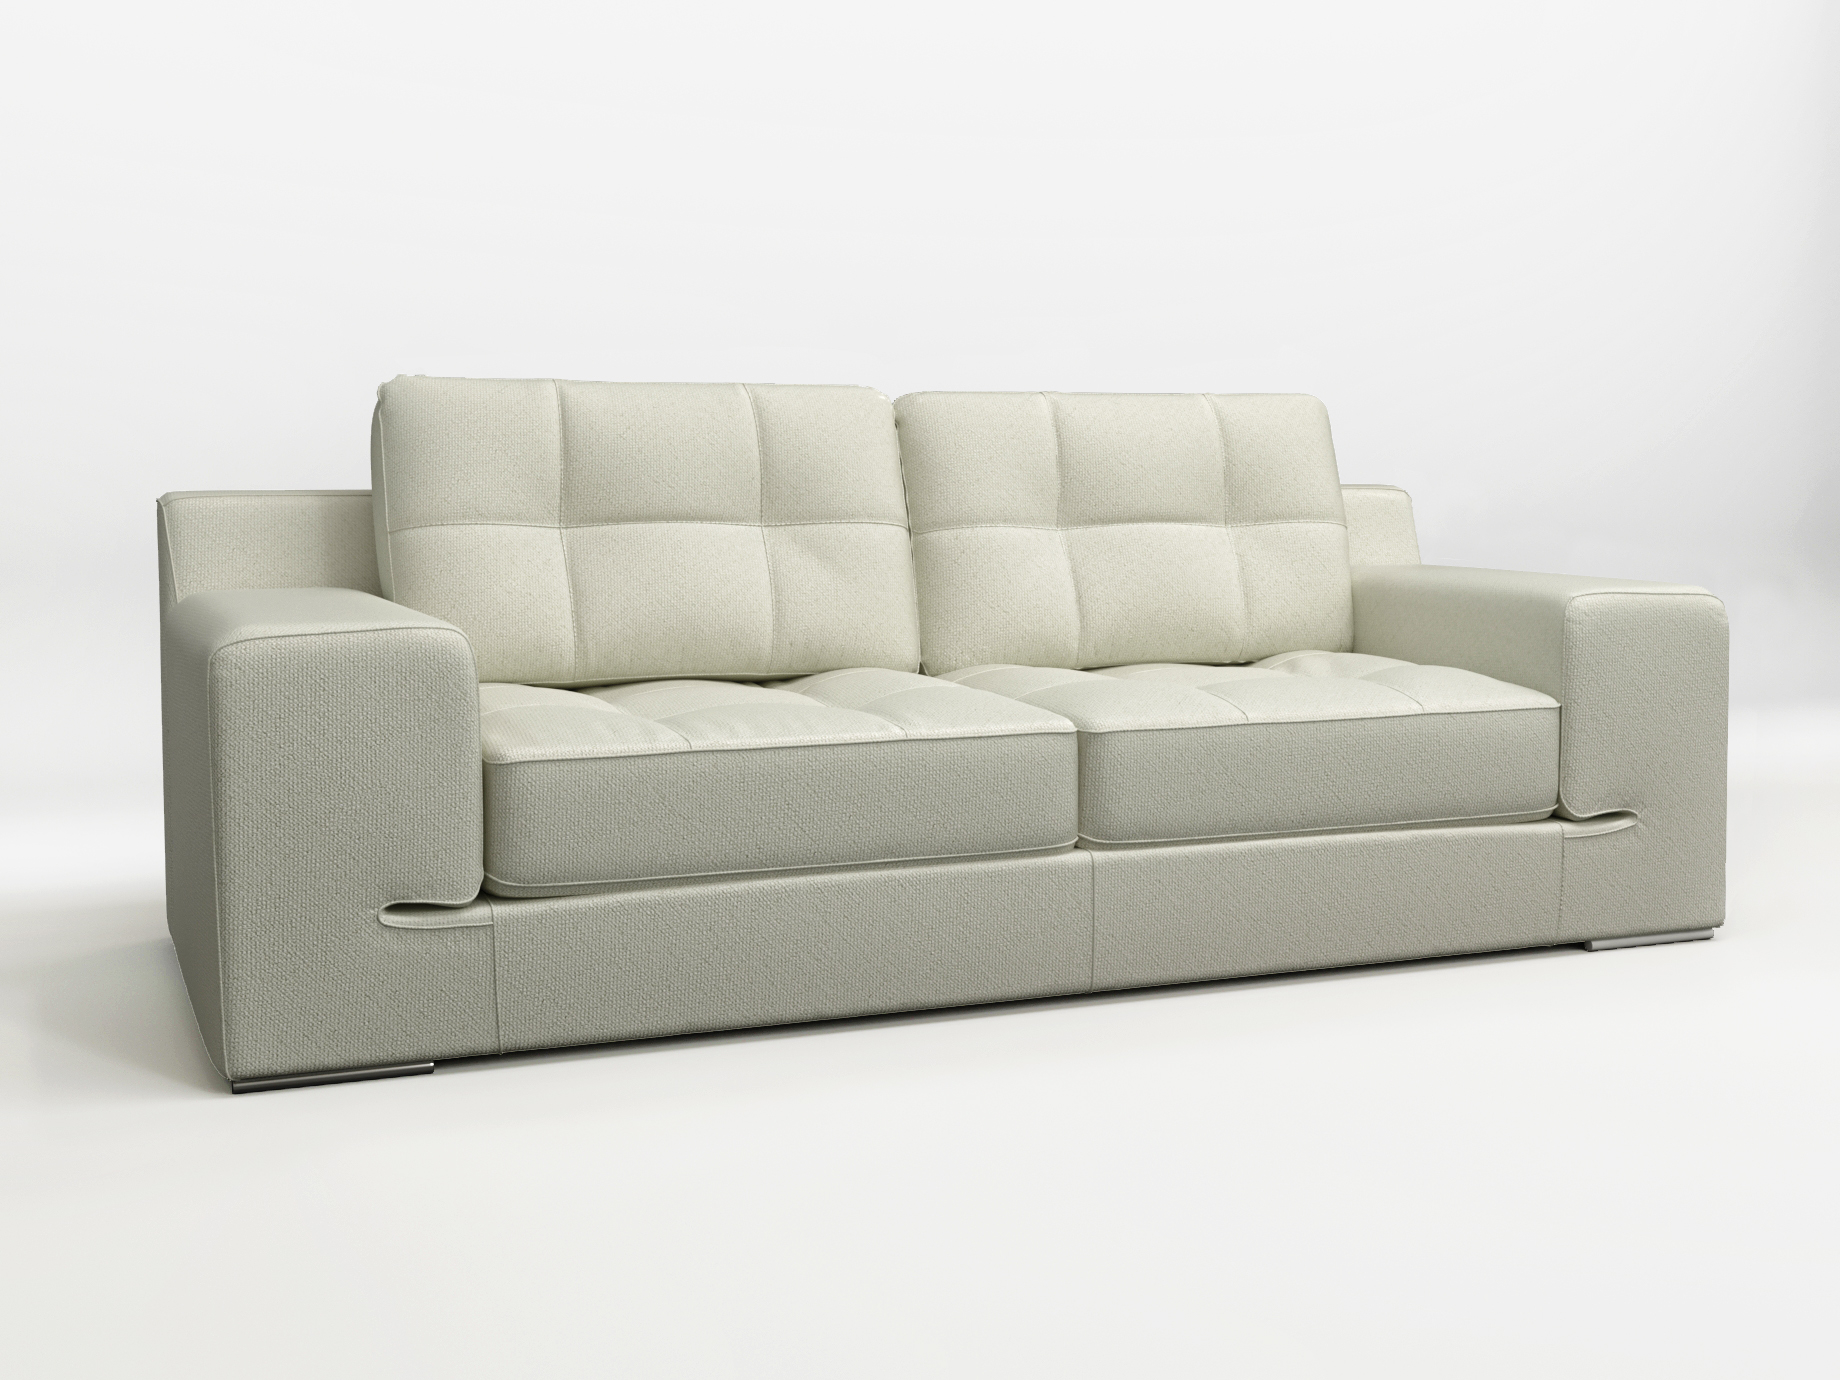 Terrific Bimini Peyton Sofa By Leons Gmtry Best Dining Table And Chair Ideas Images Gmtryco